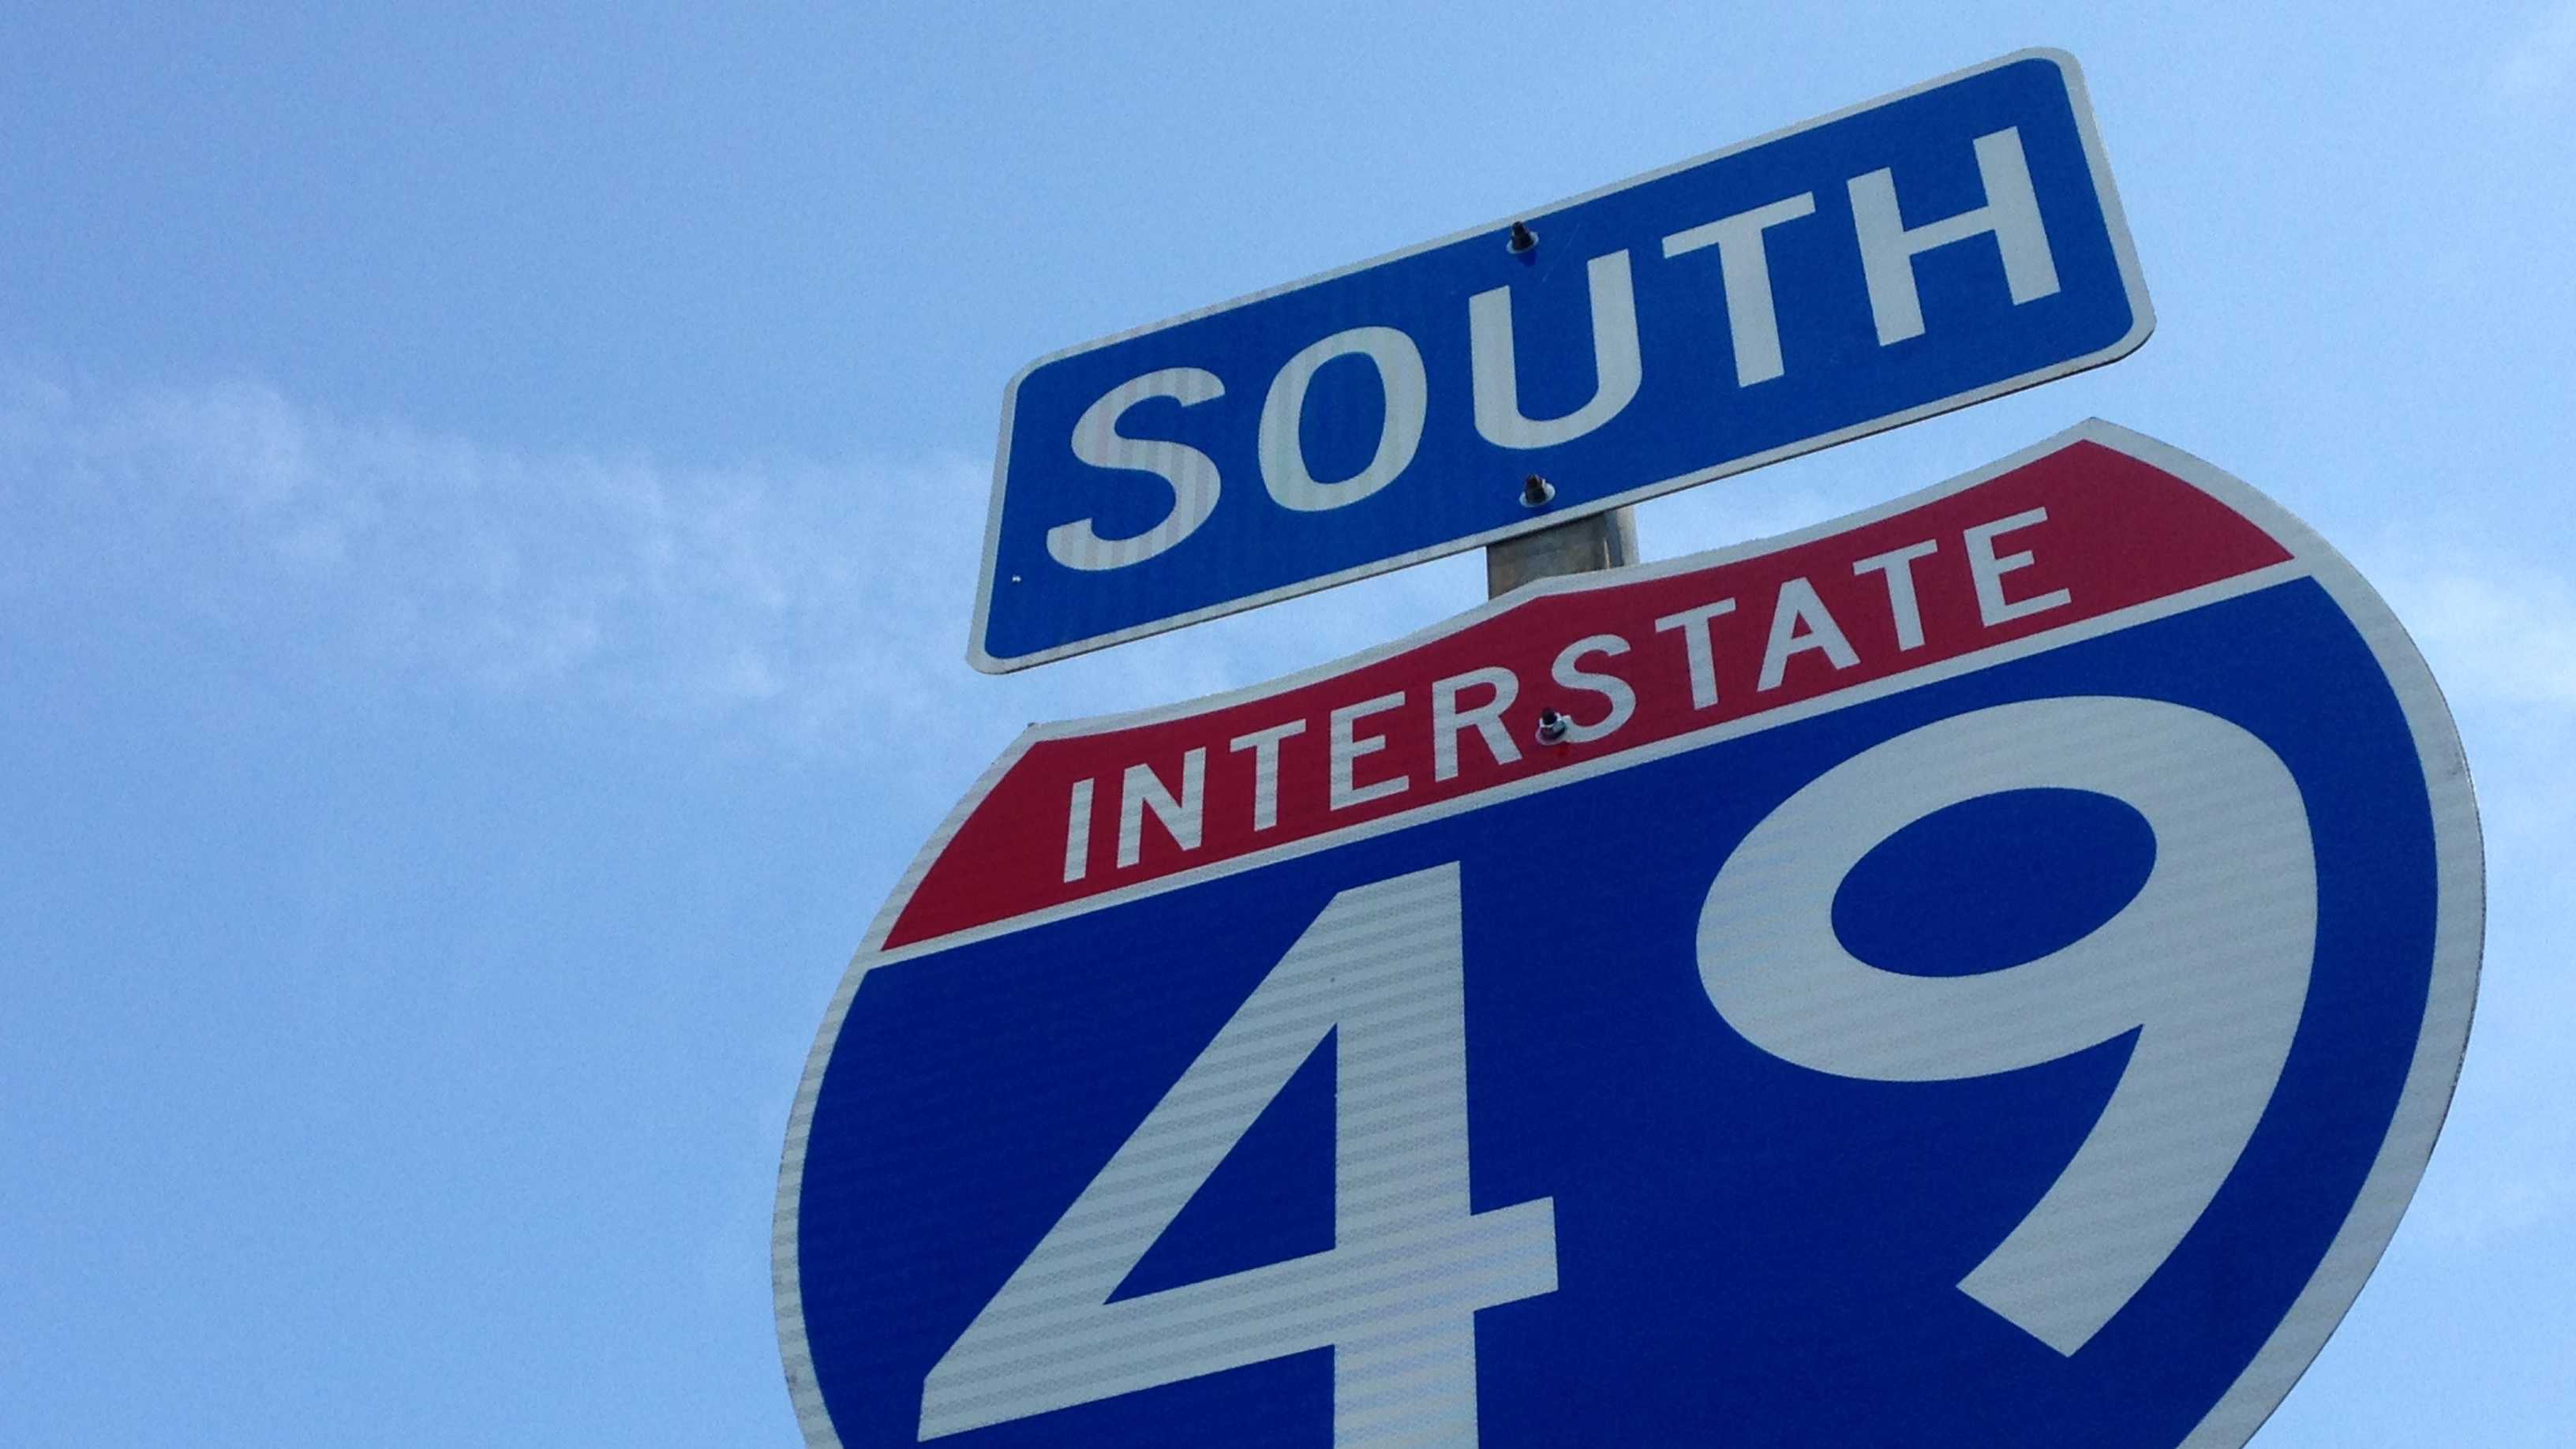 Crews place Interstate 49 signs along roadway during rush-hour commute